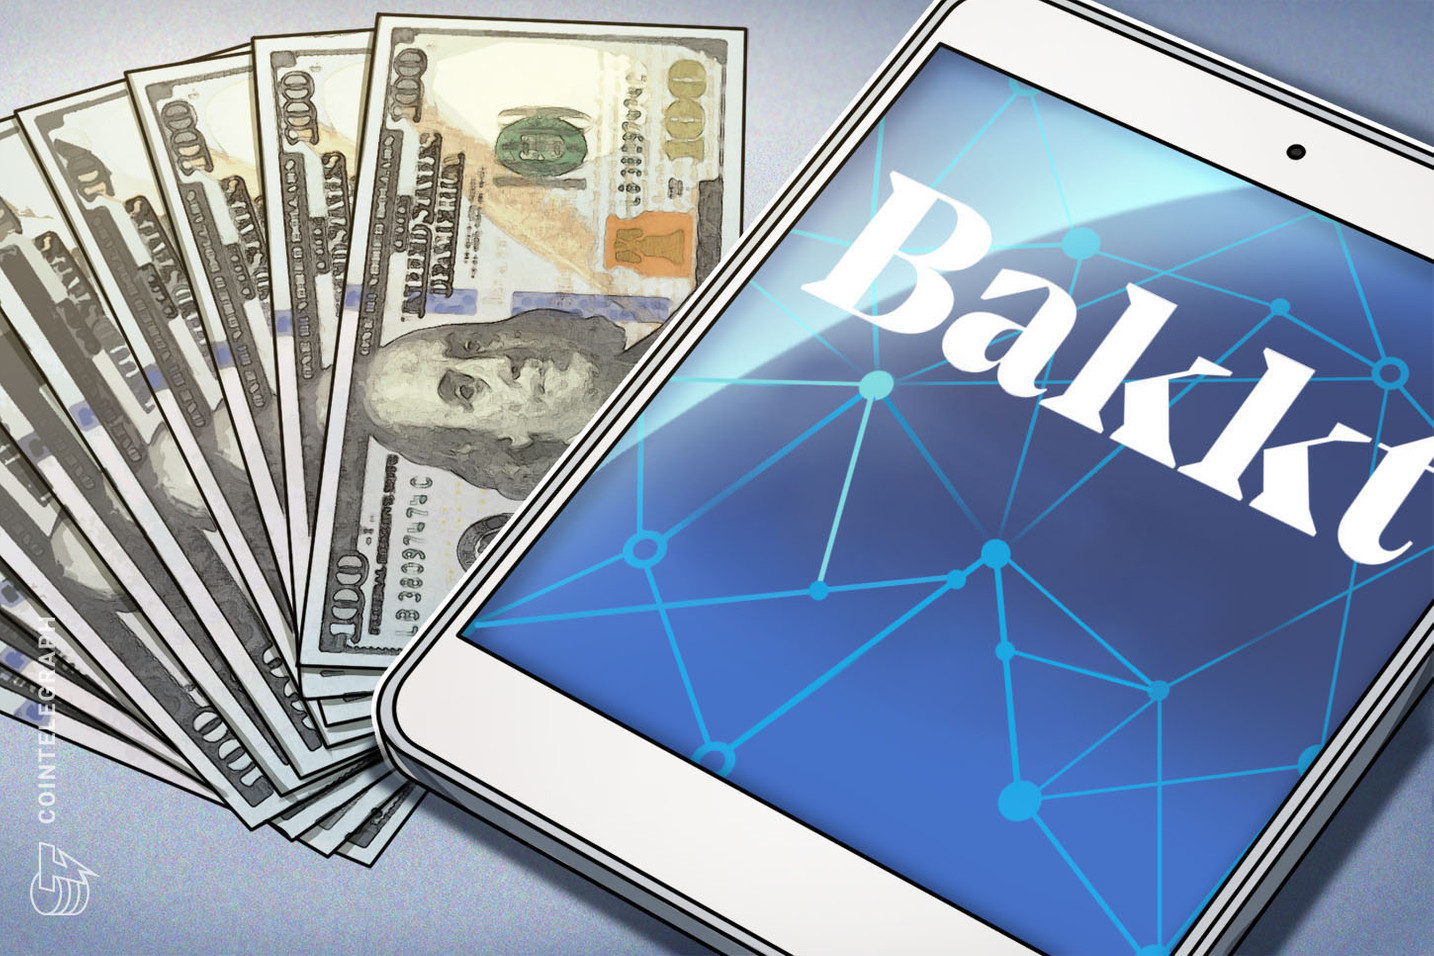 A Month After Launch, Bakkt Bitcoin Options Volumes Are Lackluster